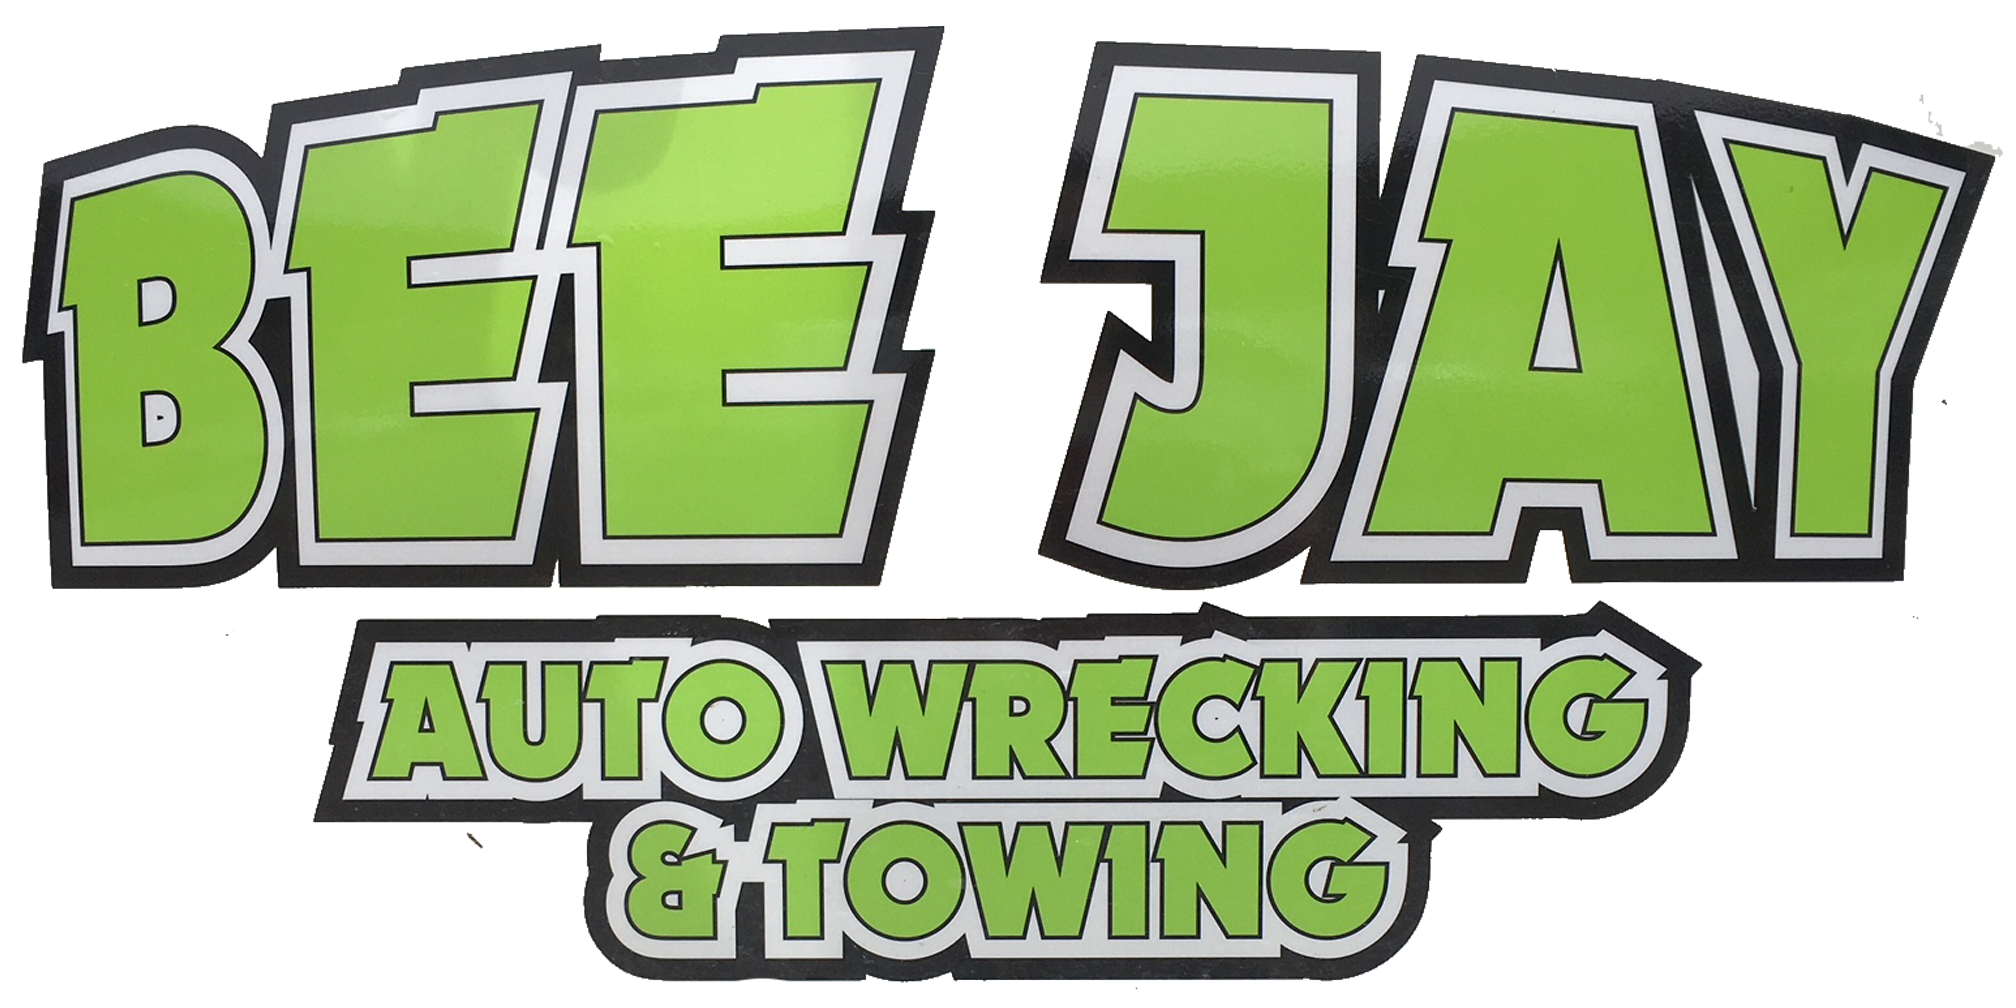 Bee Jay Auto Wrecking & Towing Ltd.